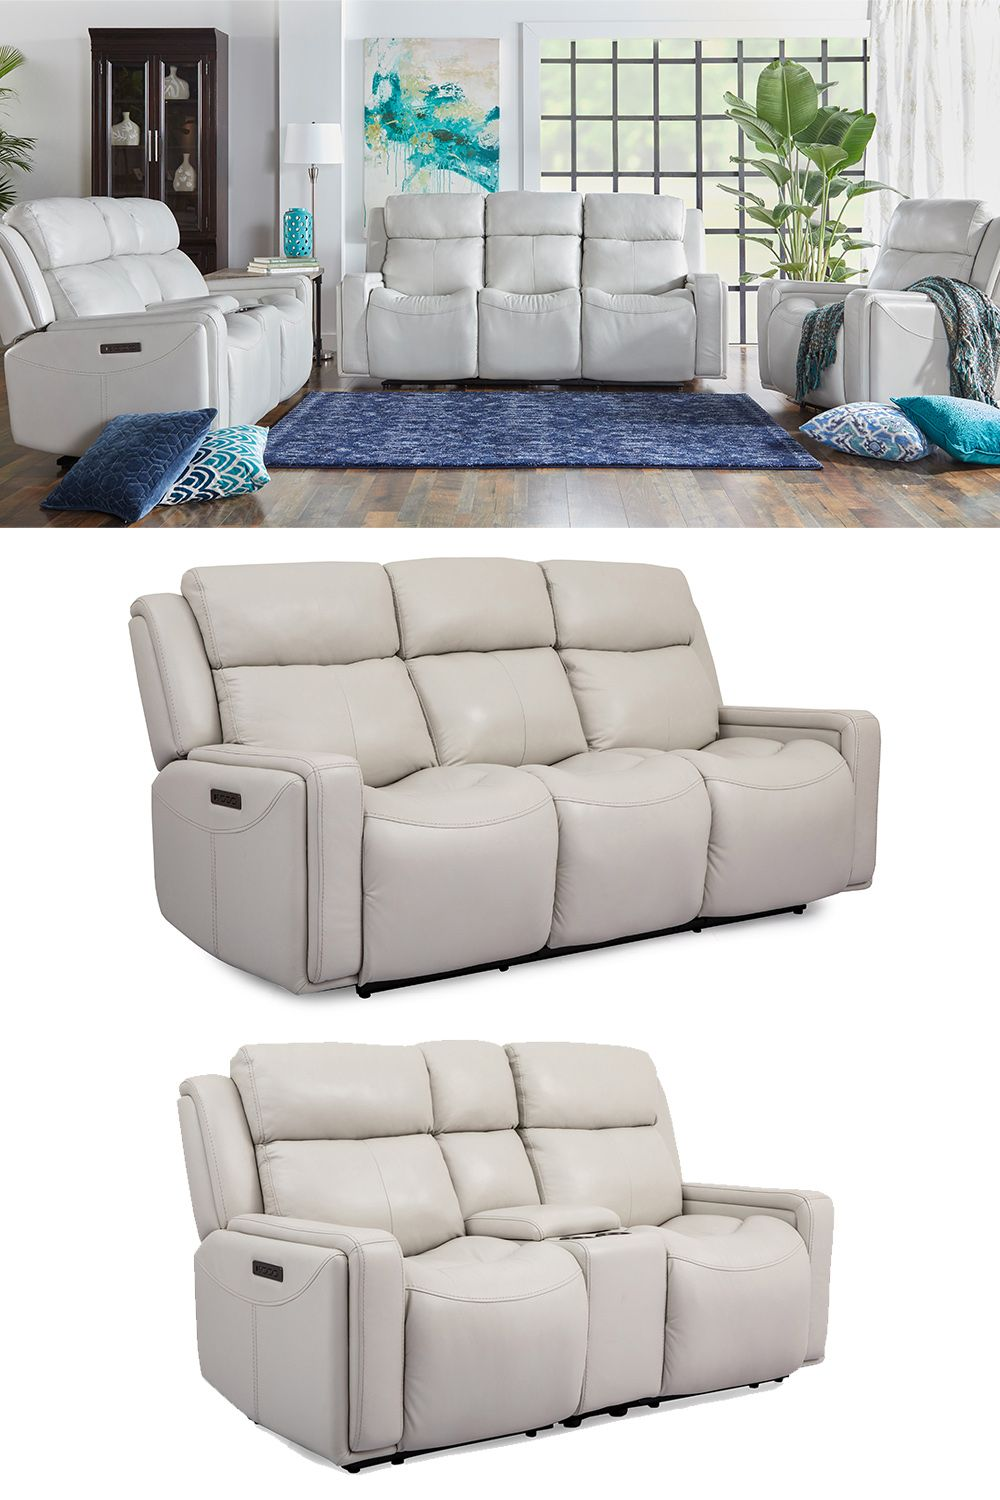 Leather Power Reclining Sofa With Power Headrest Adjustable Lumbar The Milan Leather Leather Power Reclining S Power Reclining Sofa Reclining Sofa Love Seat